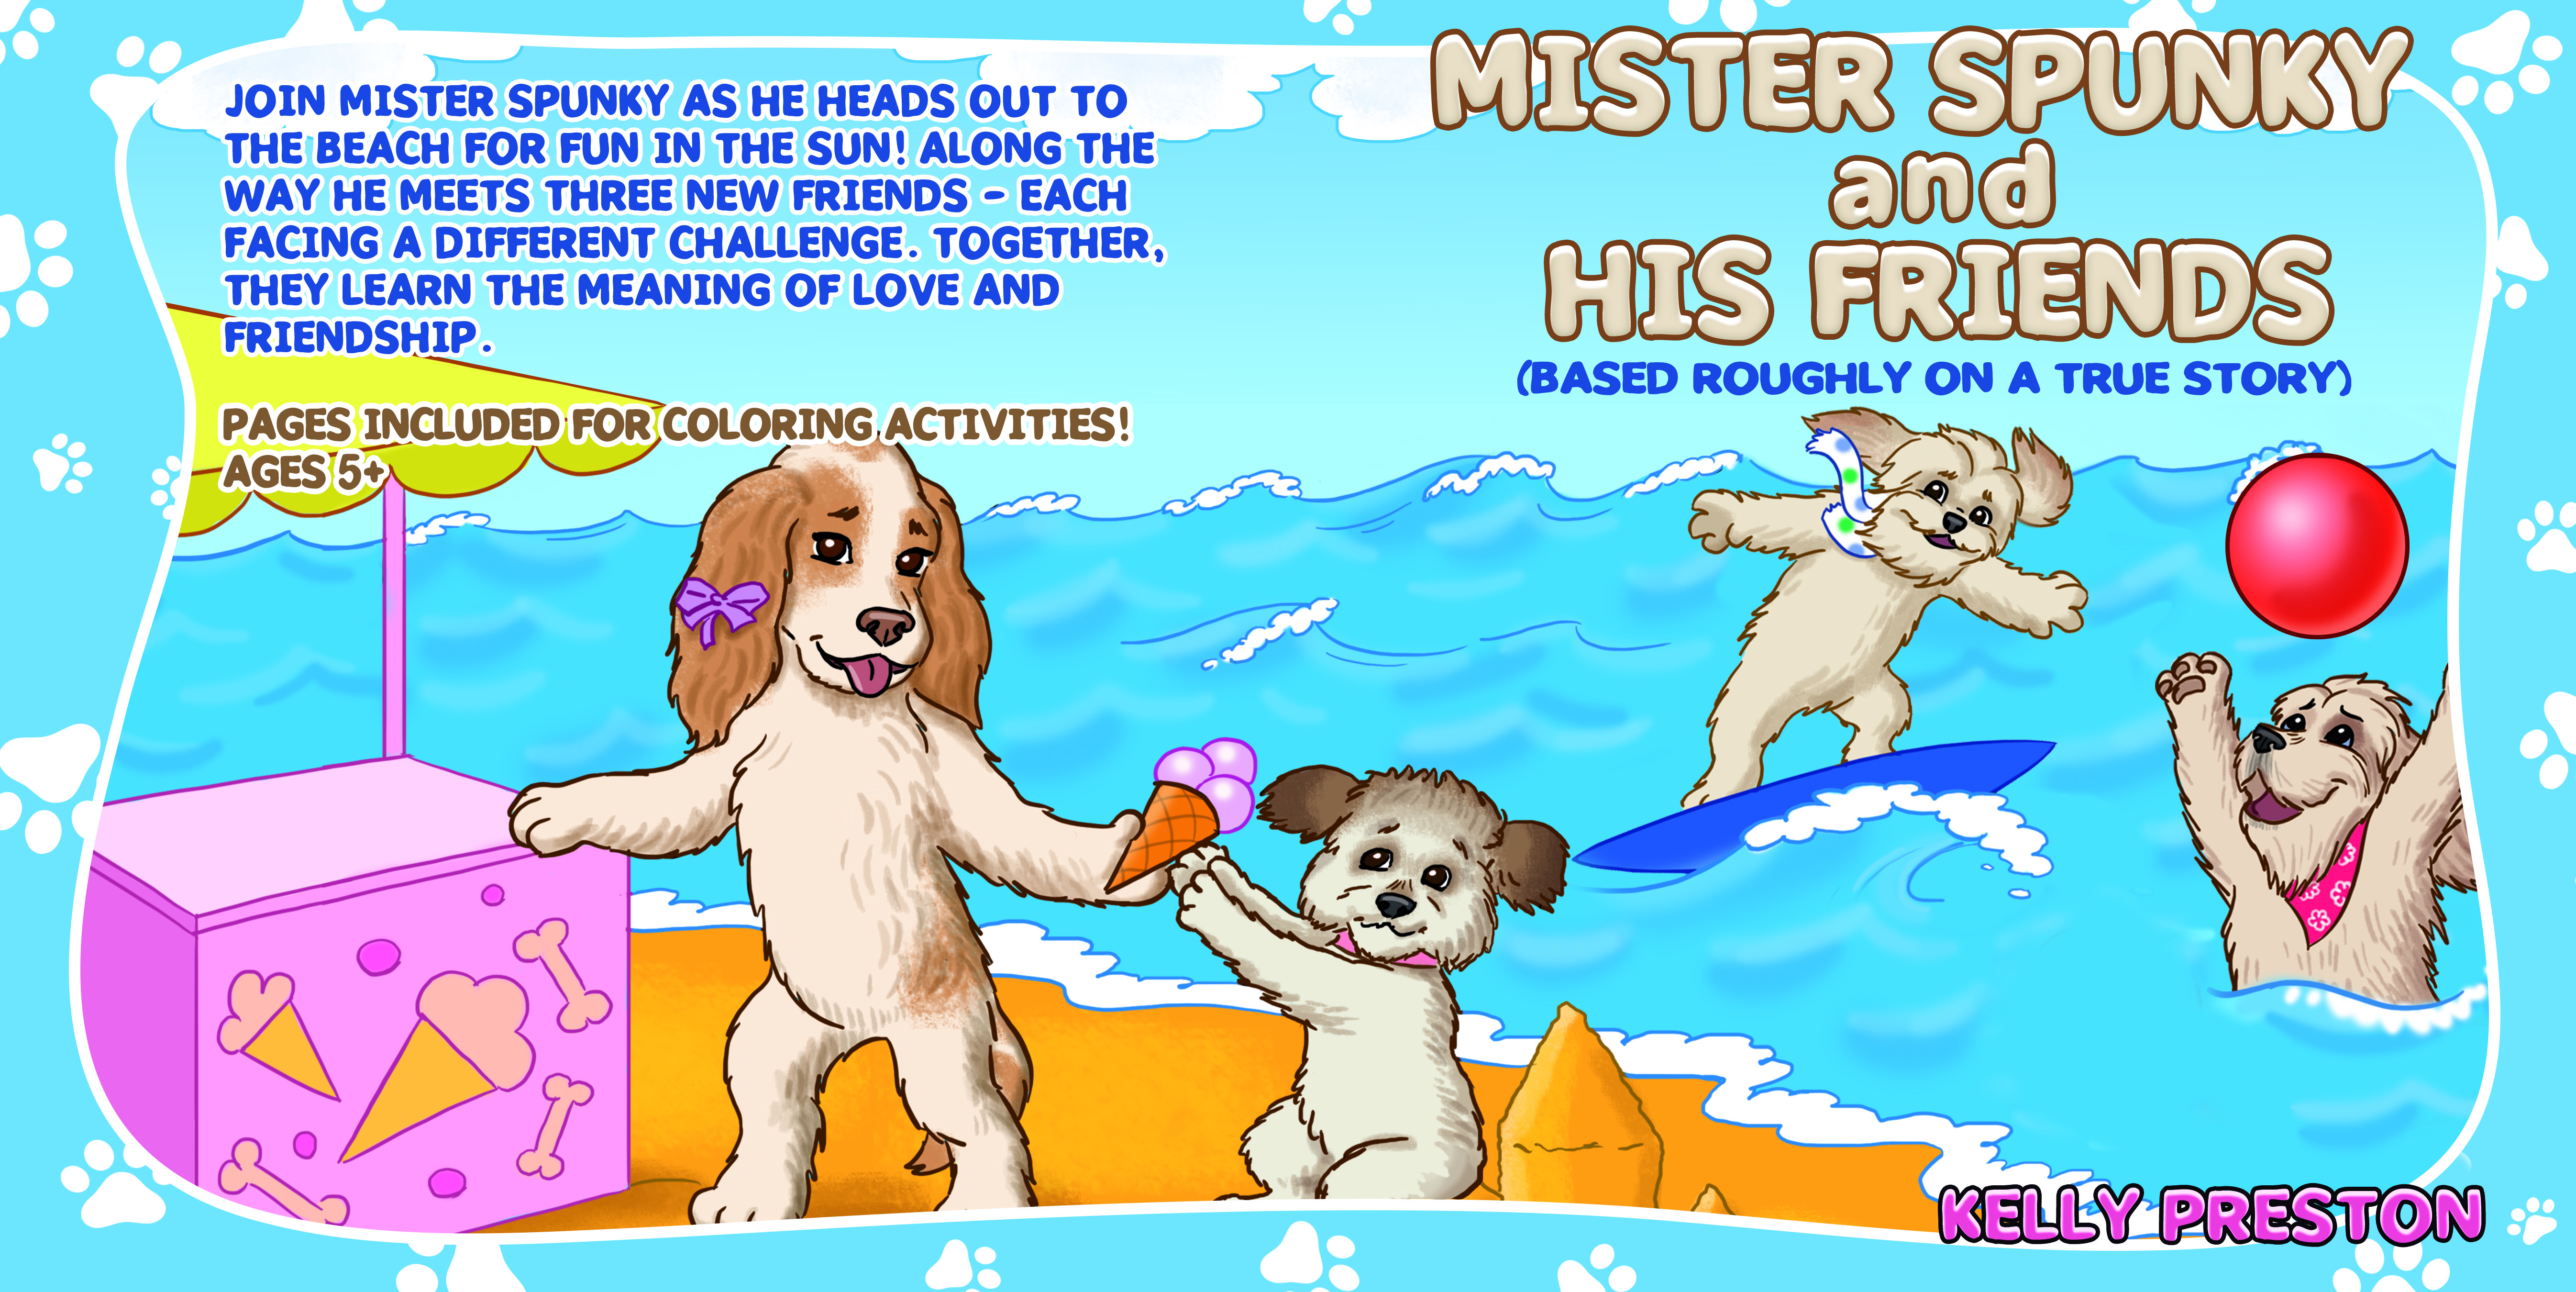 Mister Spunky and His Friends children's picture book